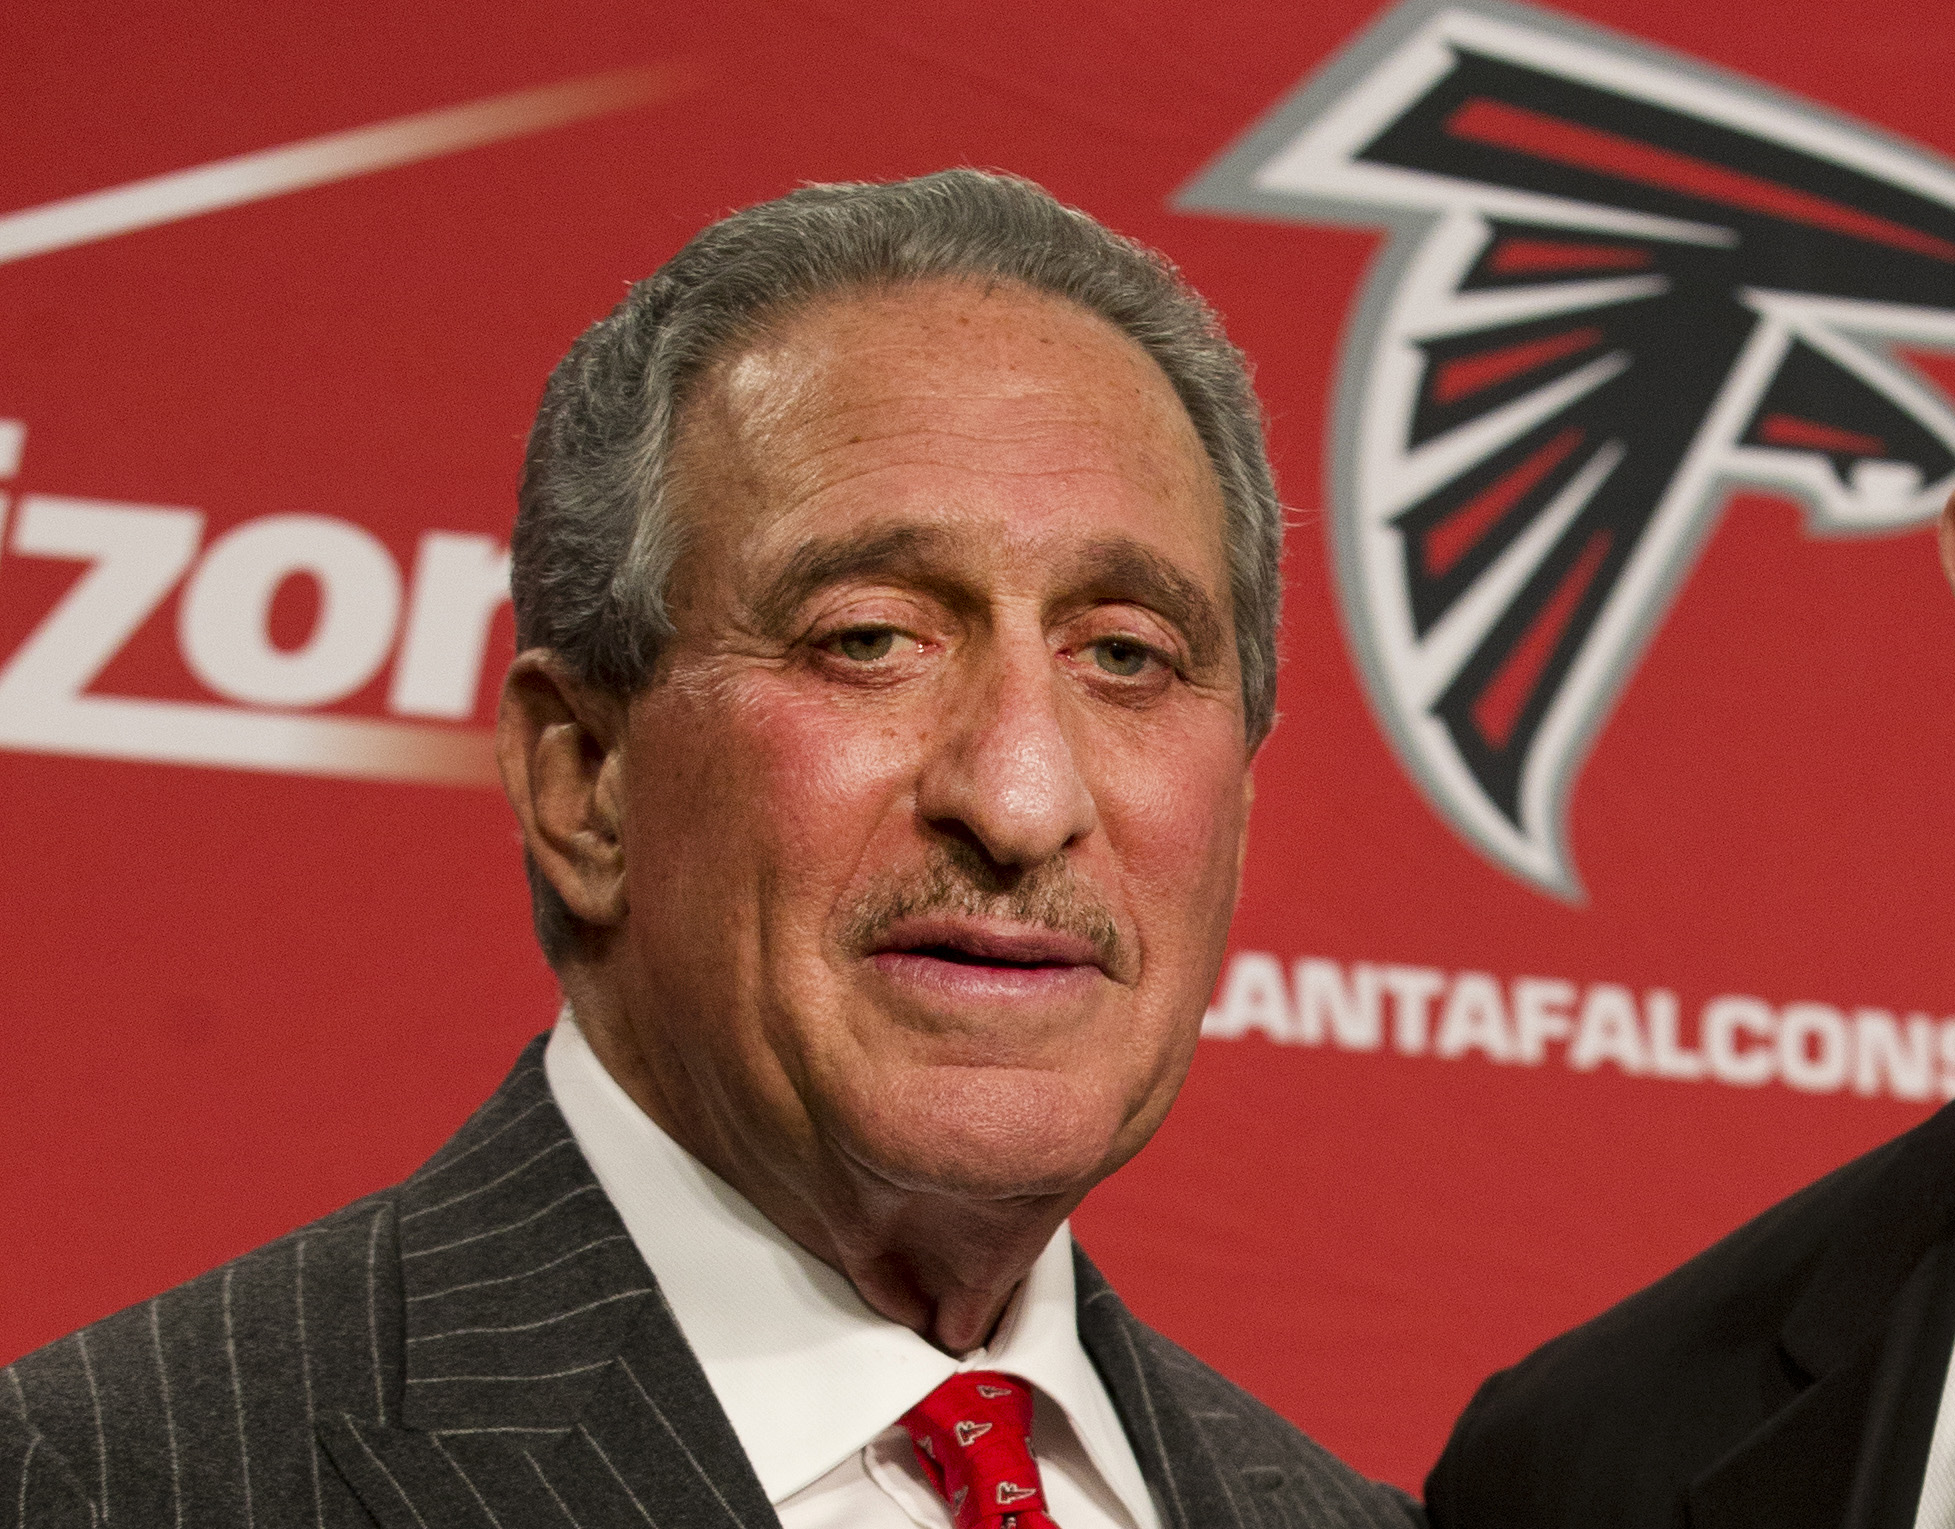 """FILE - In this Feb. 3, 2015, file photo, Atlanta Falcons owner Arthur Blank poses after  a news conference in Flowery Branch, Ga. Blank says there is a """"general feeling"""" that the Patriots' failure to acknowledge mistakes hurt the them when it came to the"""